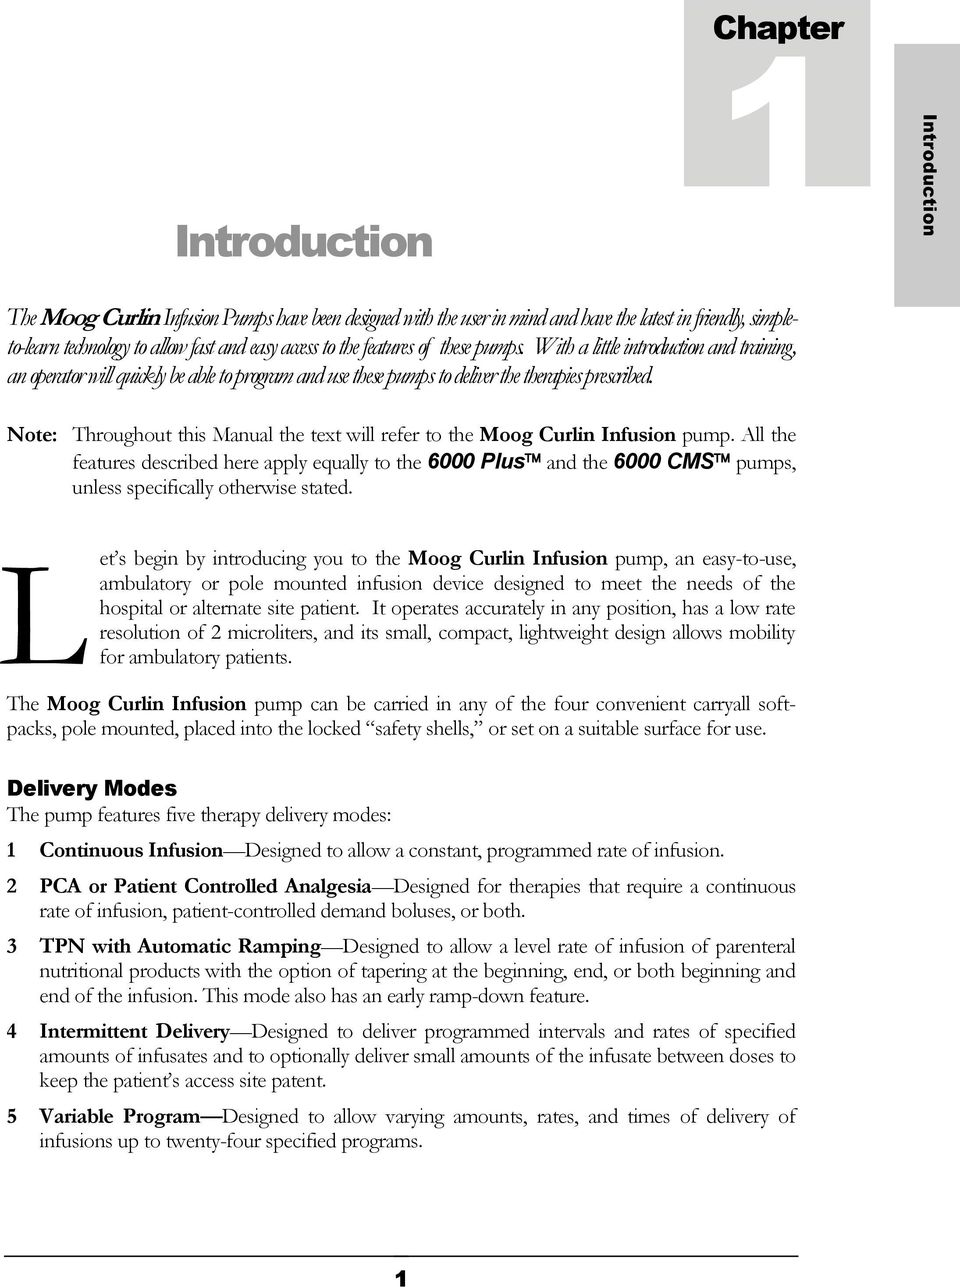 Braun Infusion Pump User Manual